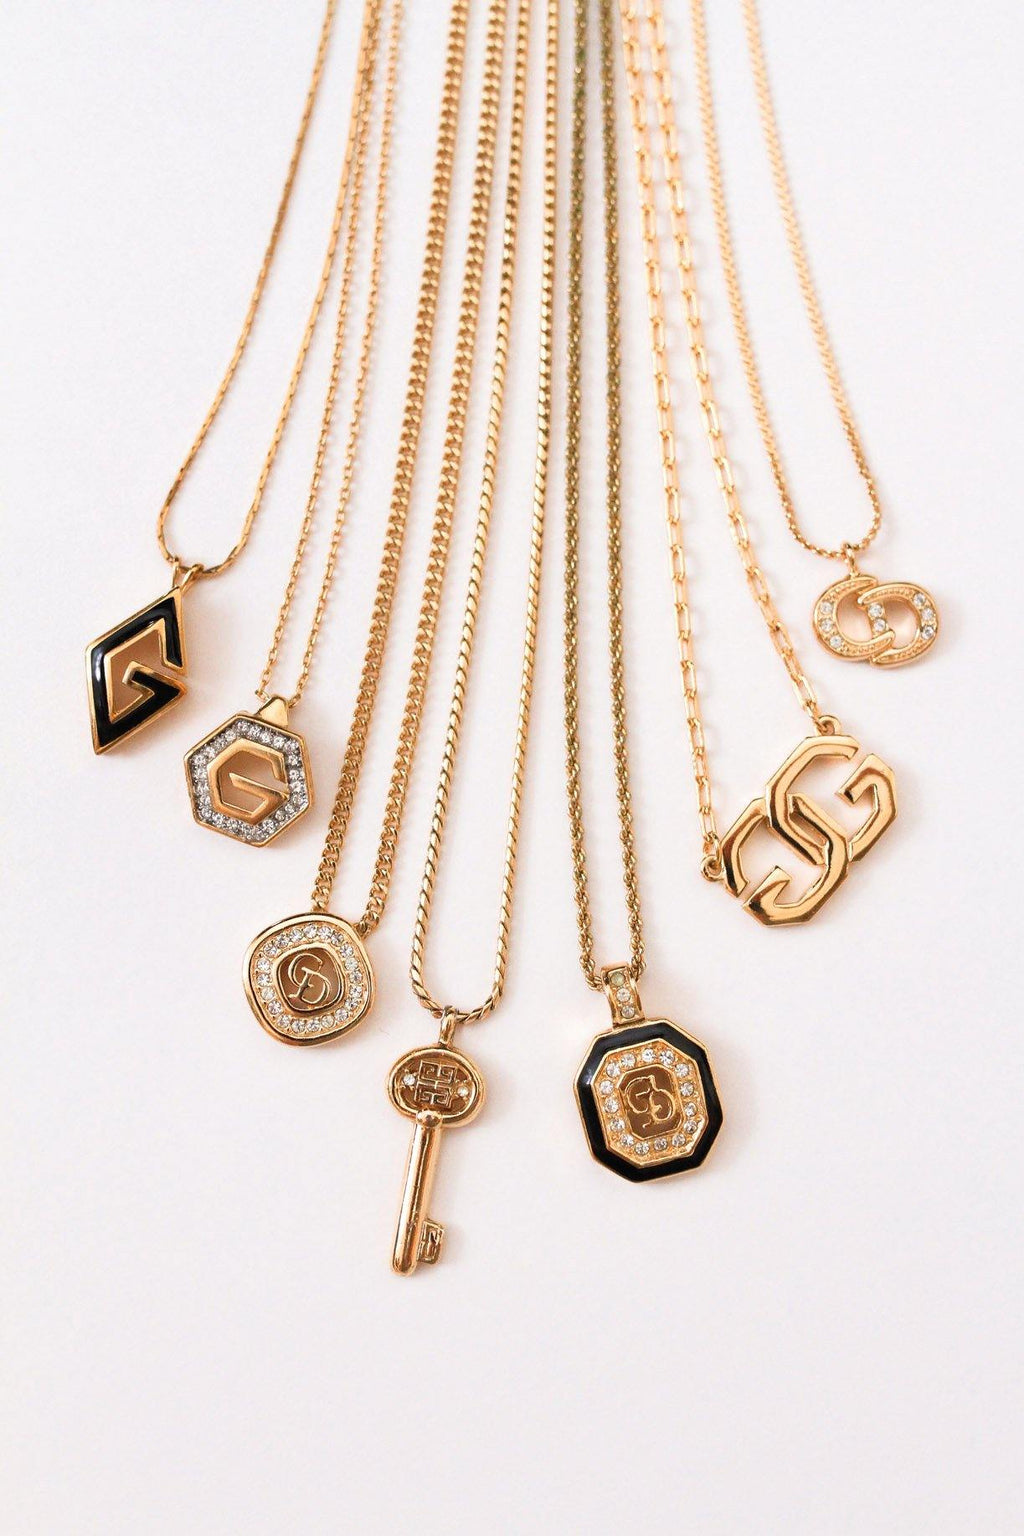 Givenchy Dainty G Necklace